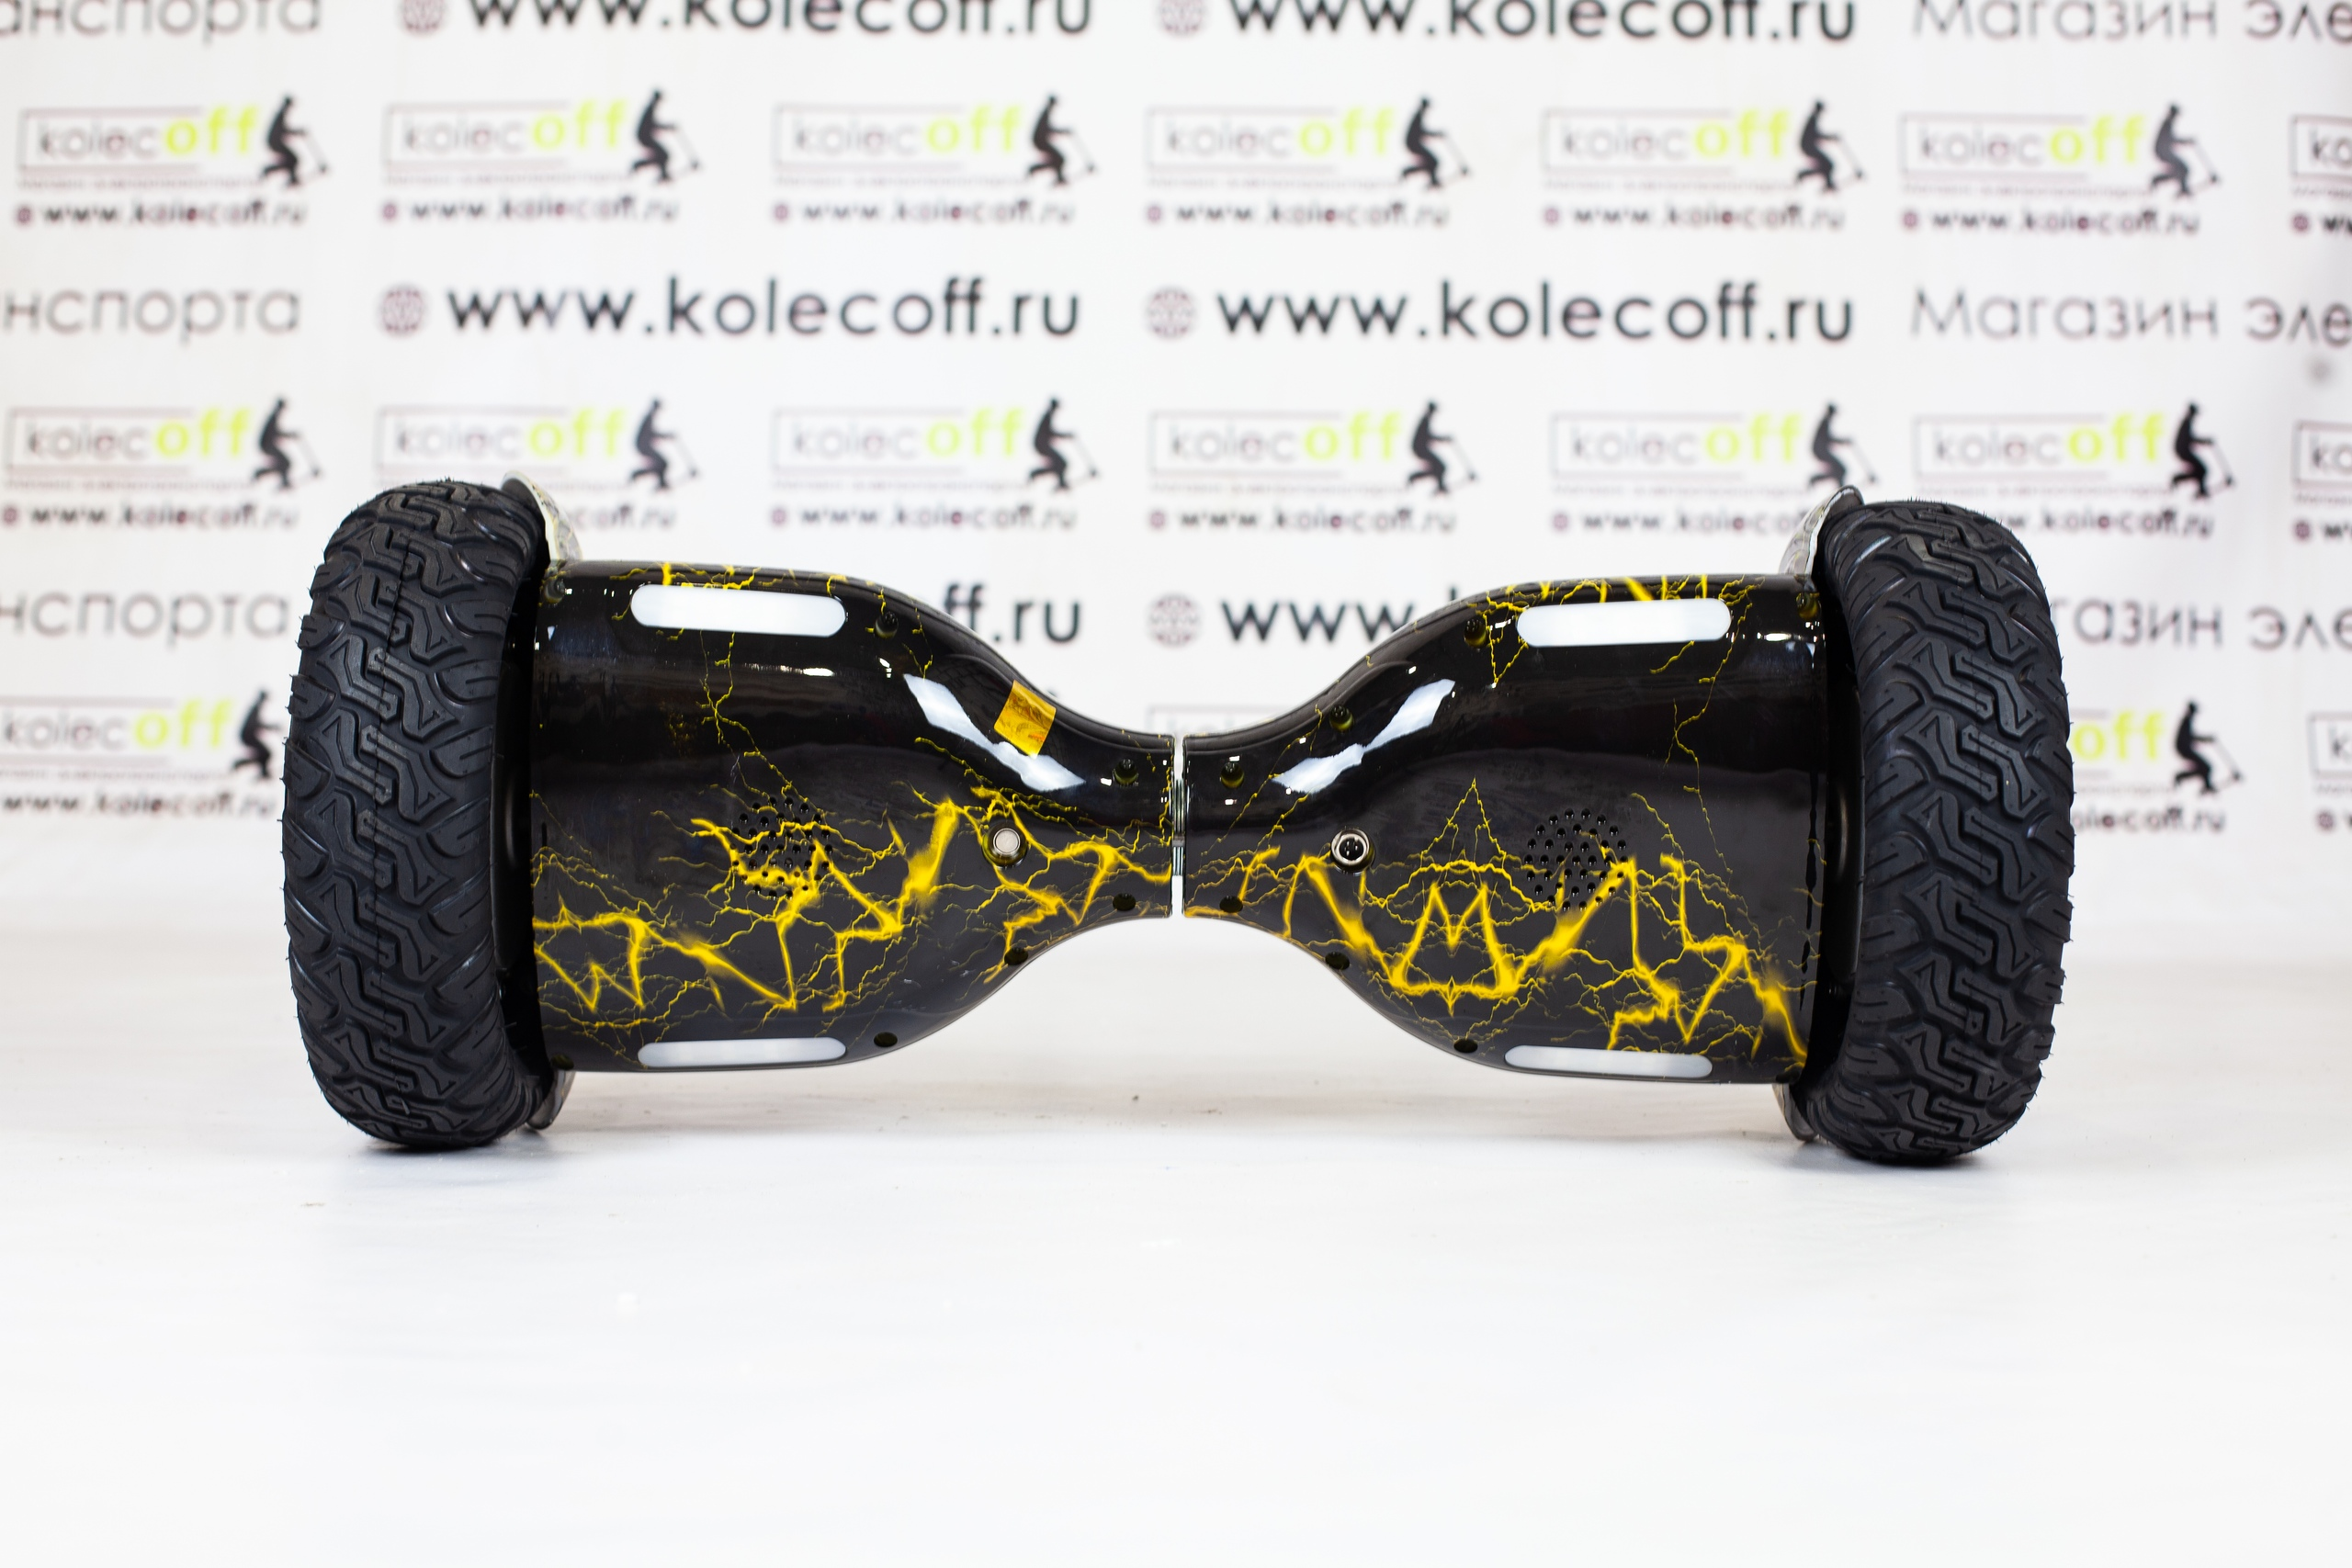 Гироскутер Smart Balance Cross-country AQUA 11.5 Жёлтая молния TaoTao + Самобаланс